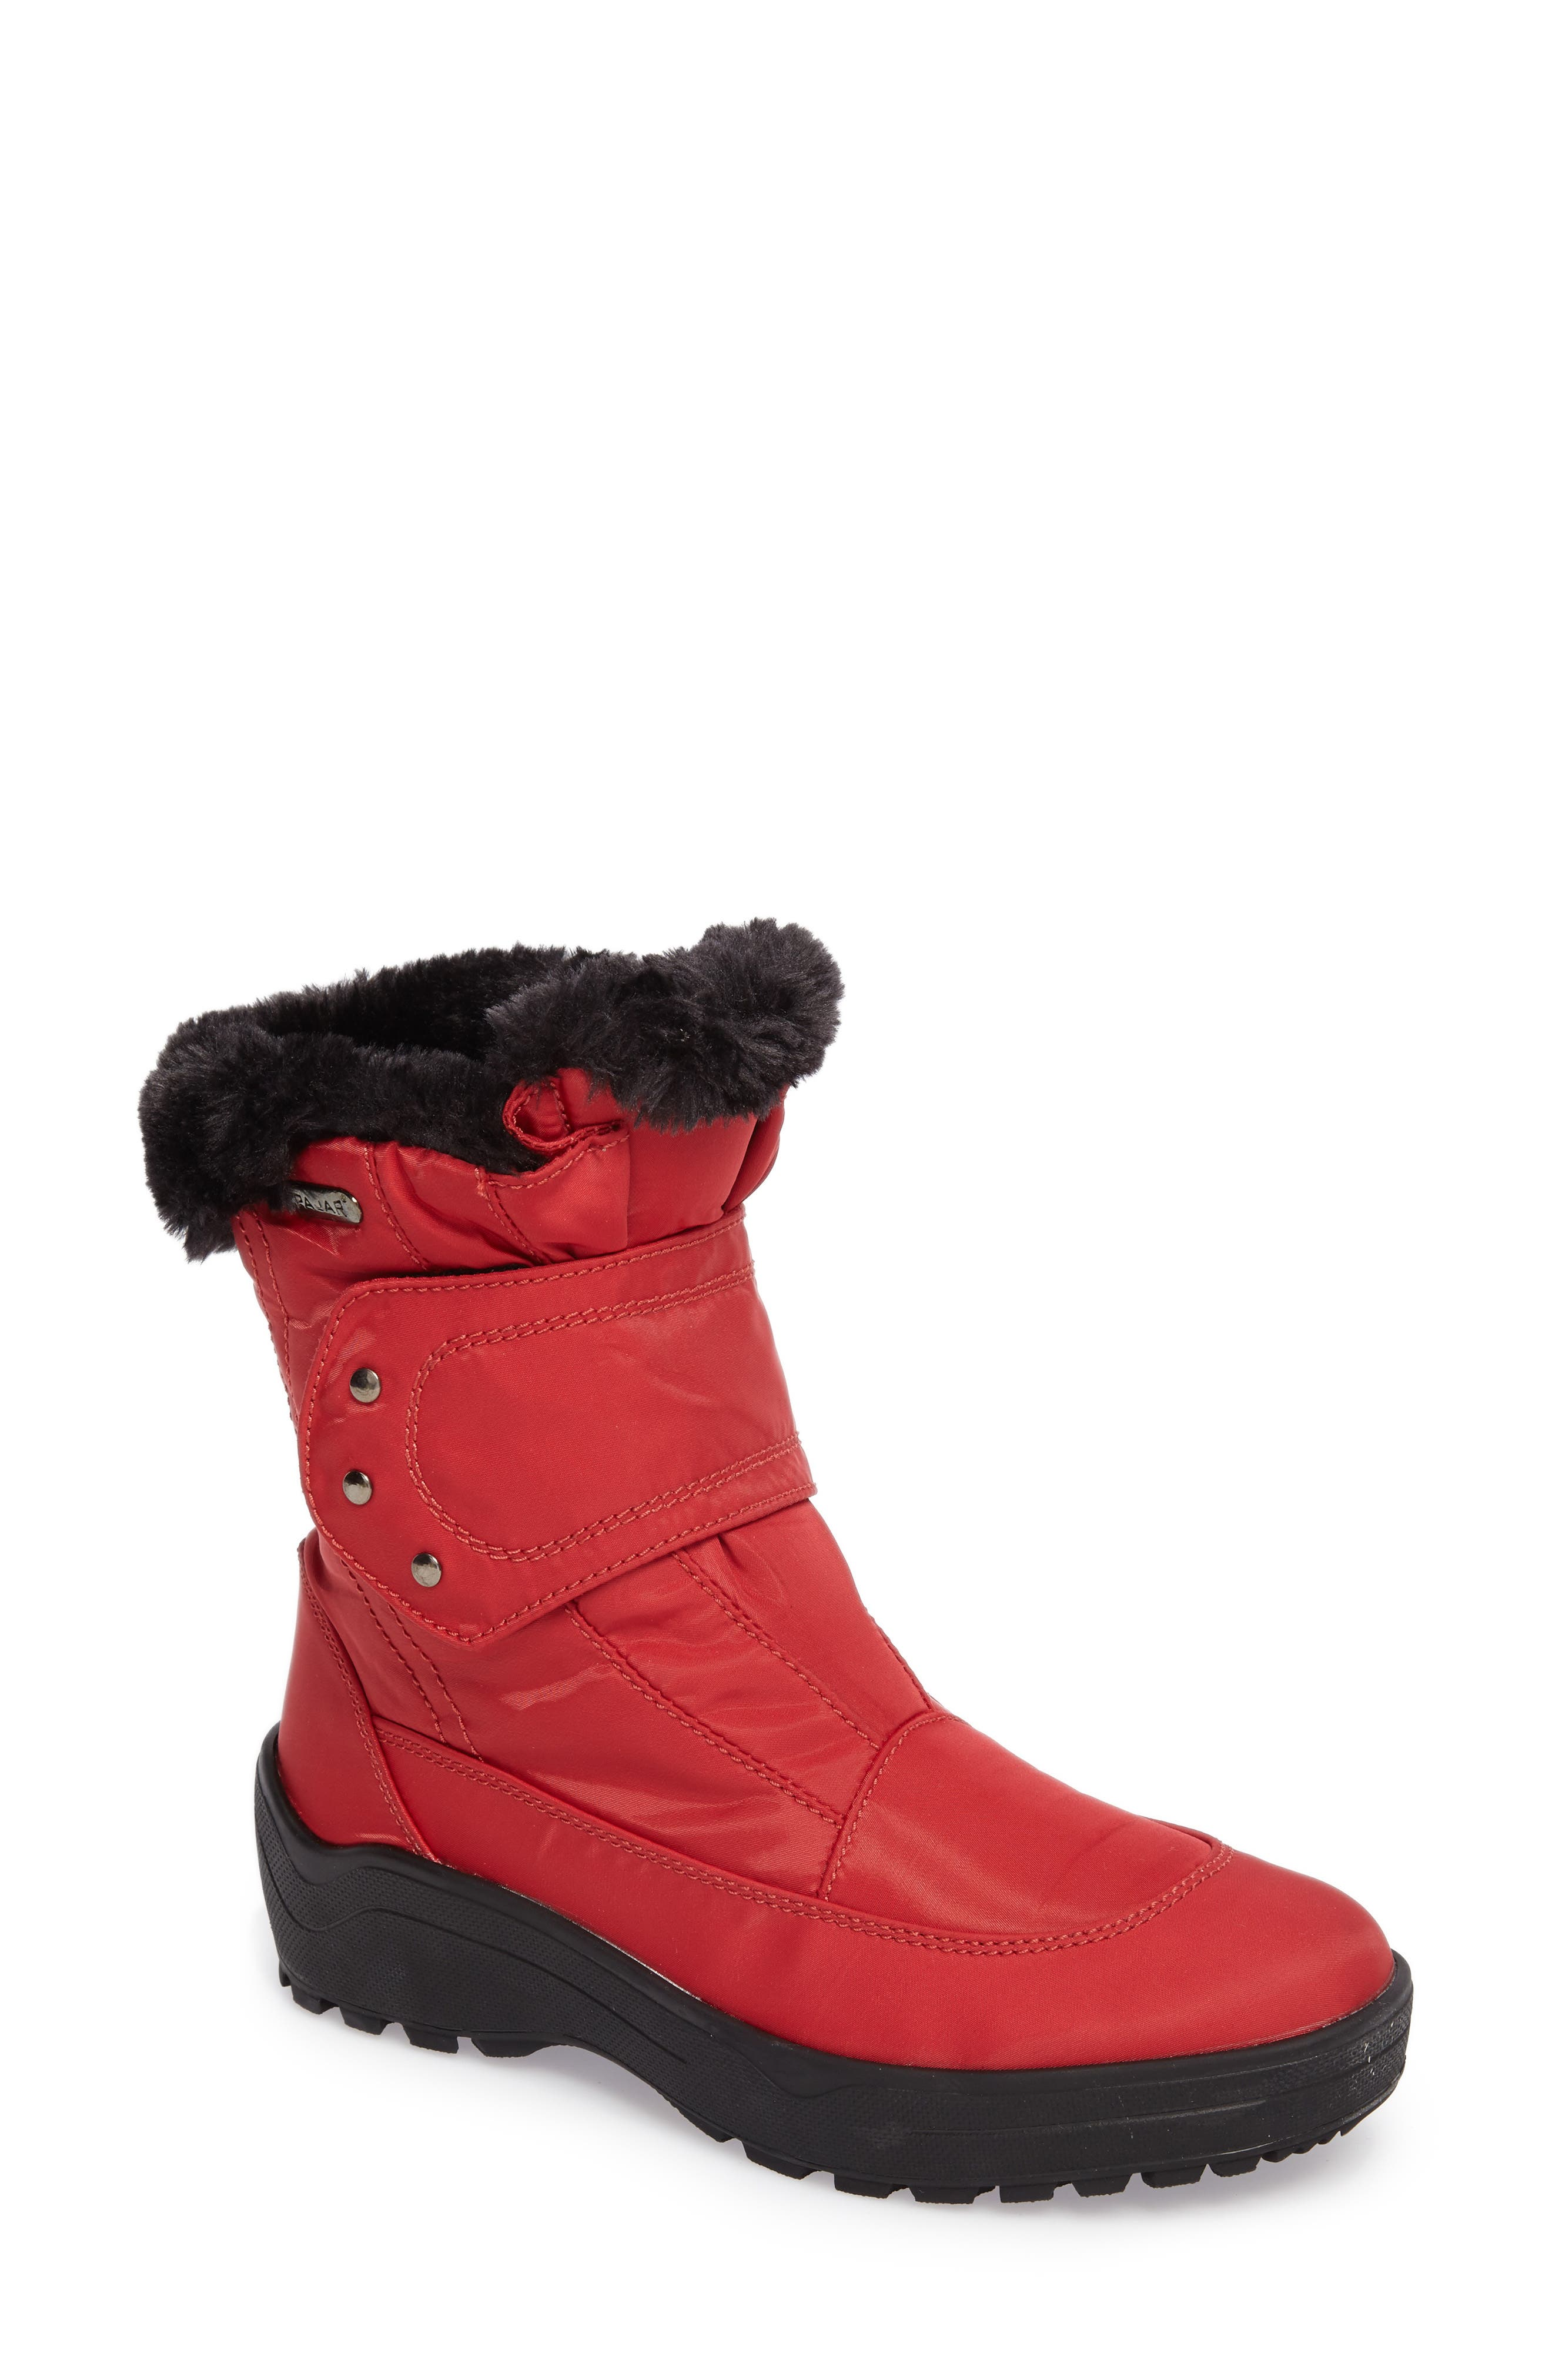 Pajar Shoes Moscou Snow Boot, Red